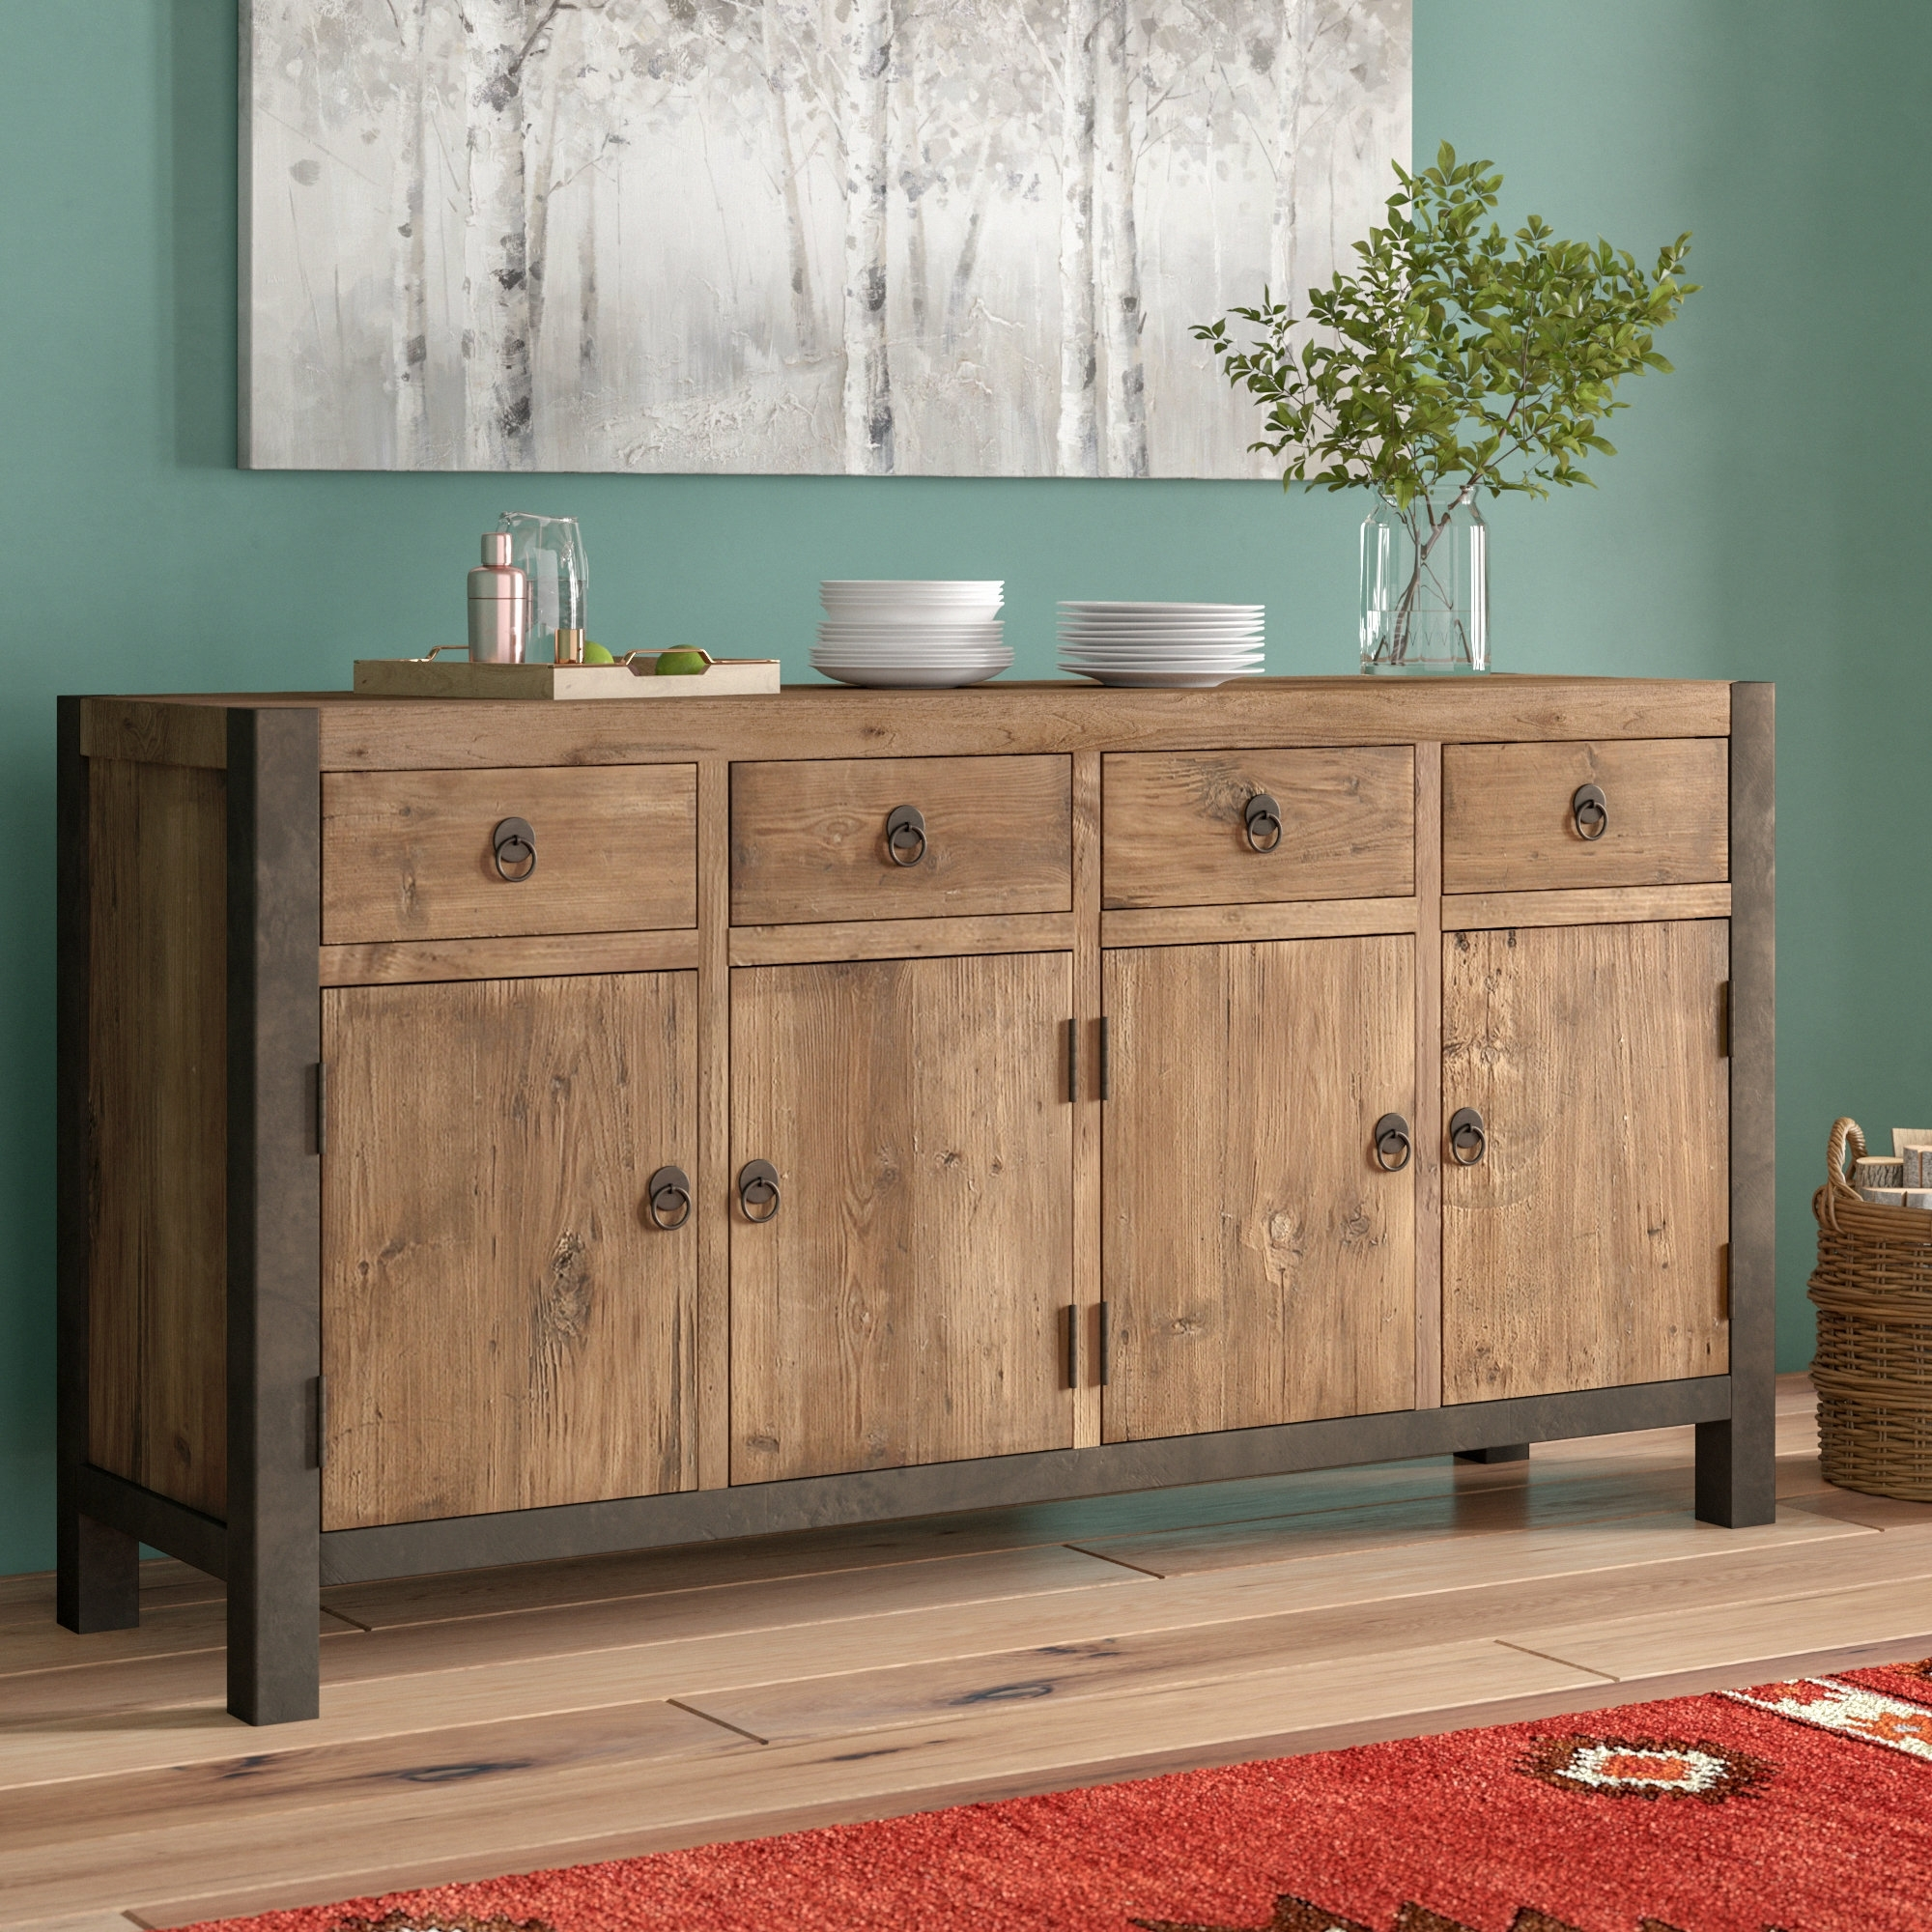 Inspiration about Greyleigh Woodstock Sideboard & Reviews | Wayfair With Recent Reclaimed Pine Turquoise 4 Door Sideboards (#5 of 20)